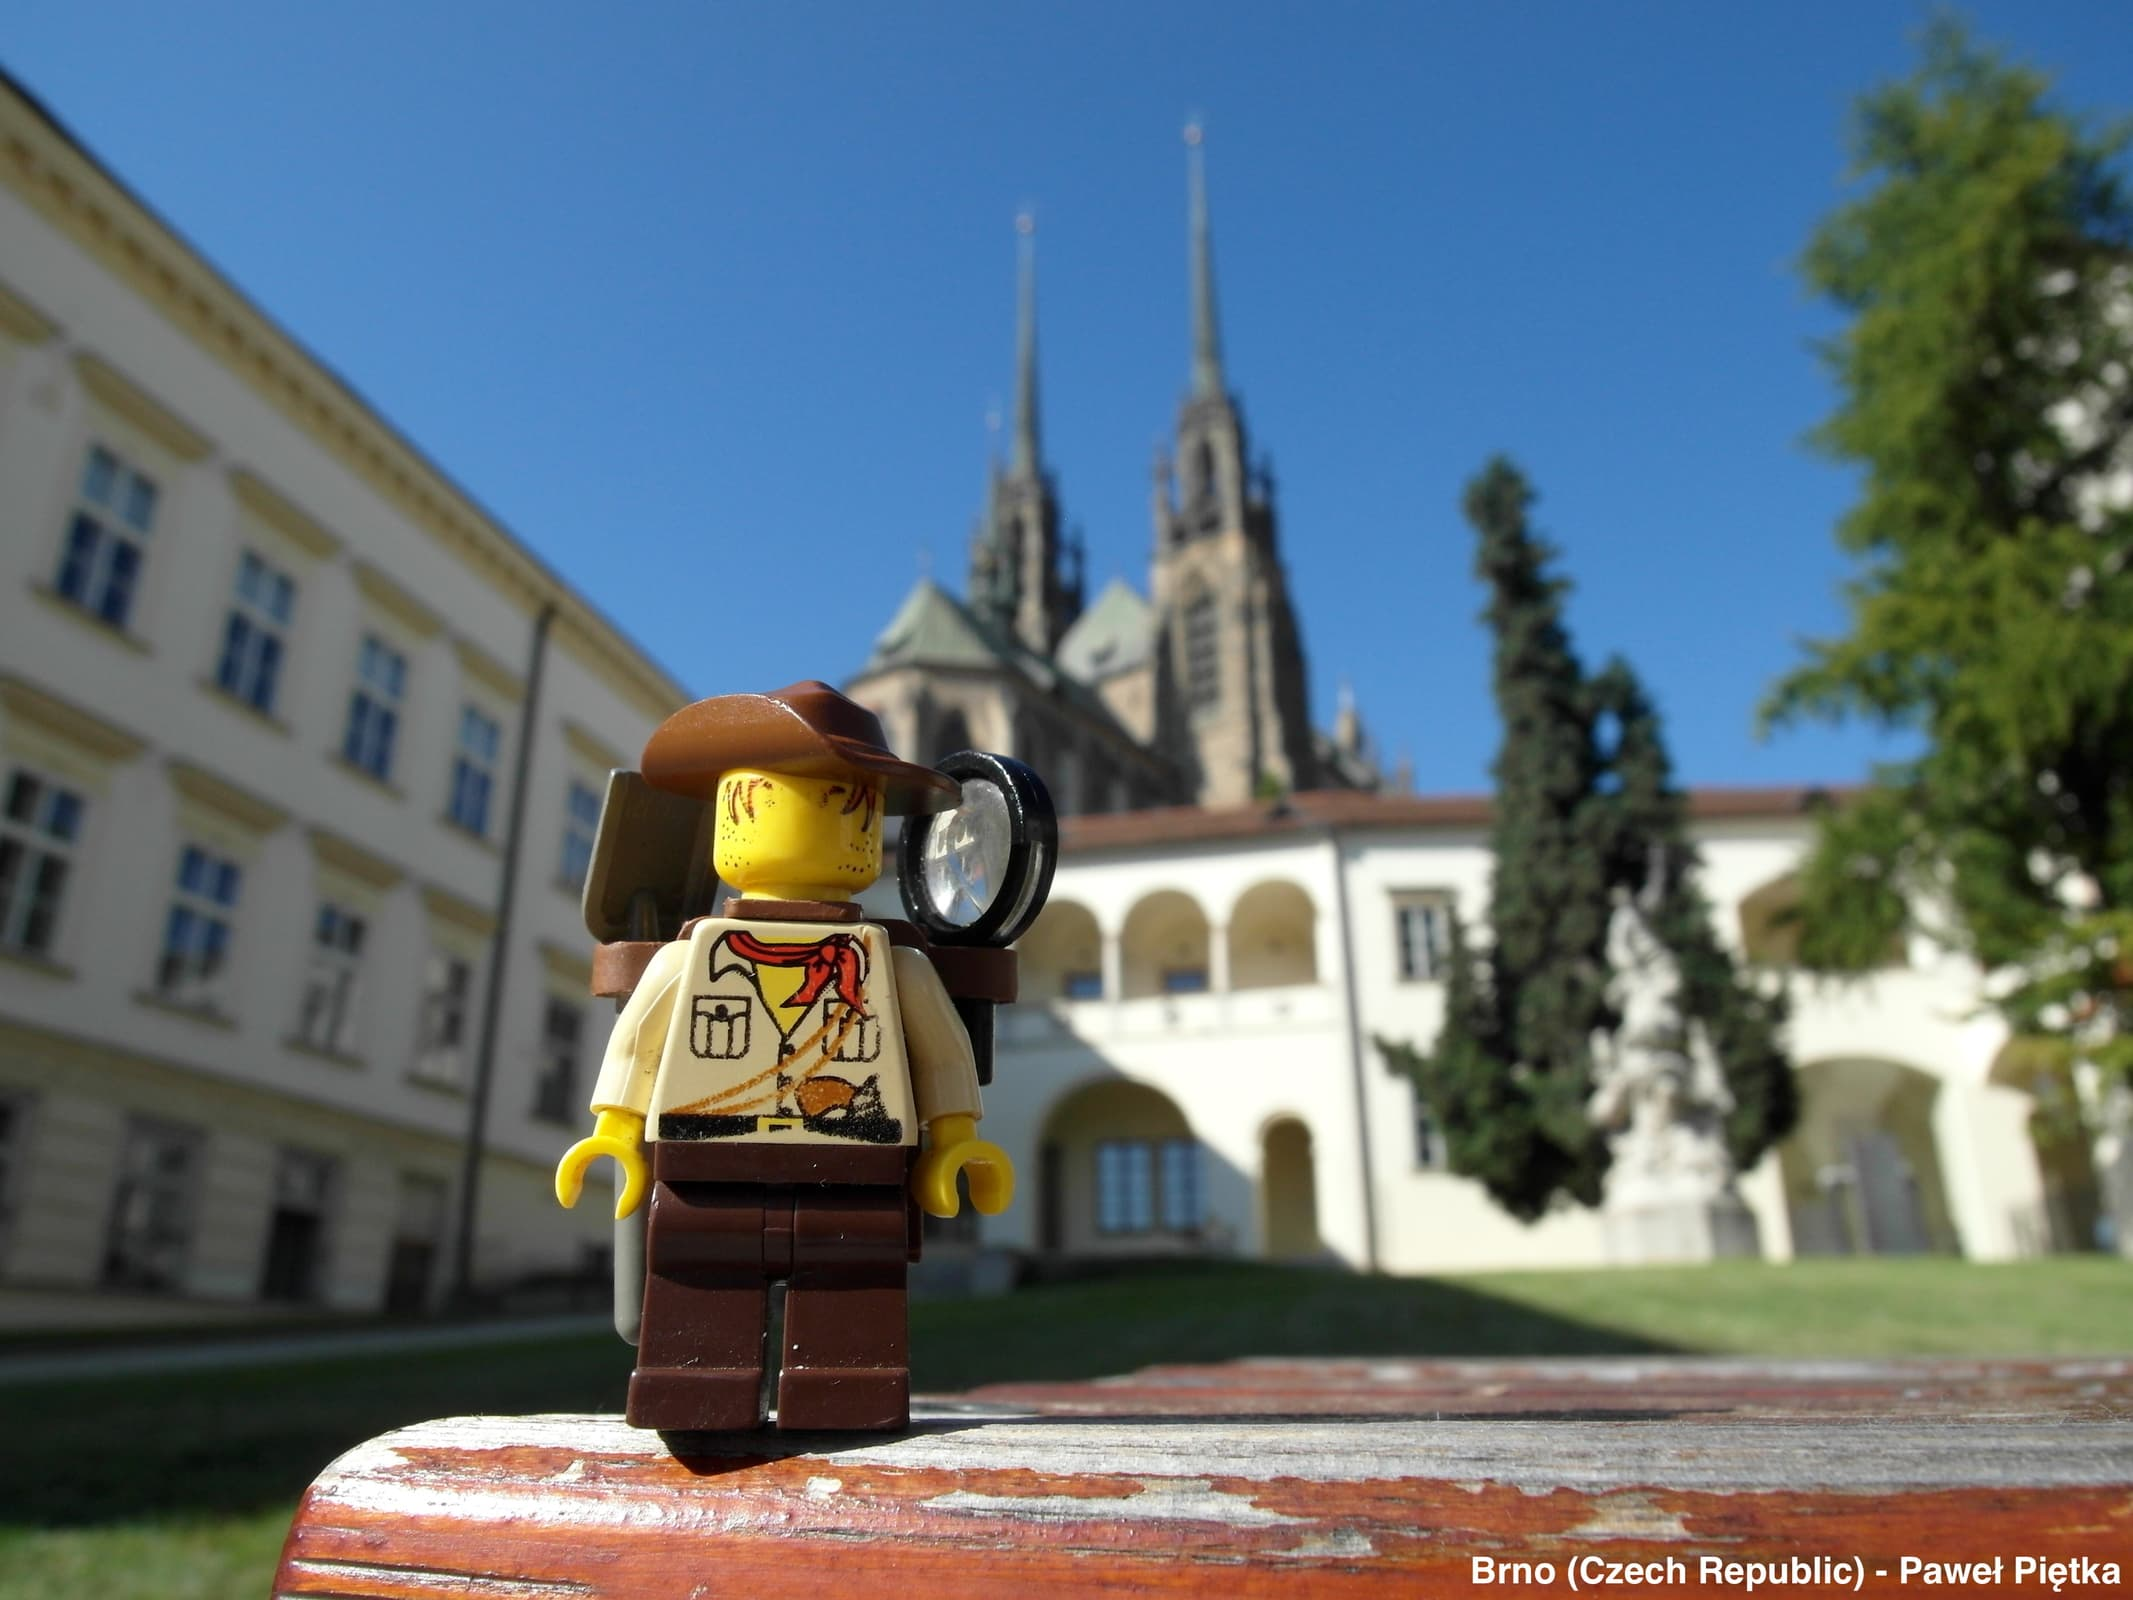 Brno (Czech Republic) - Cathedral of Saint Peter and Paul